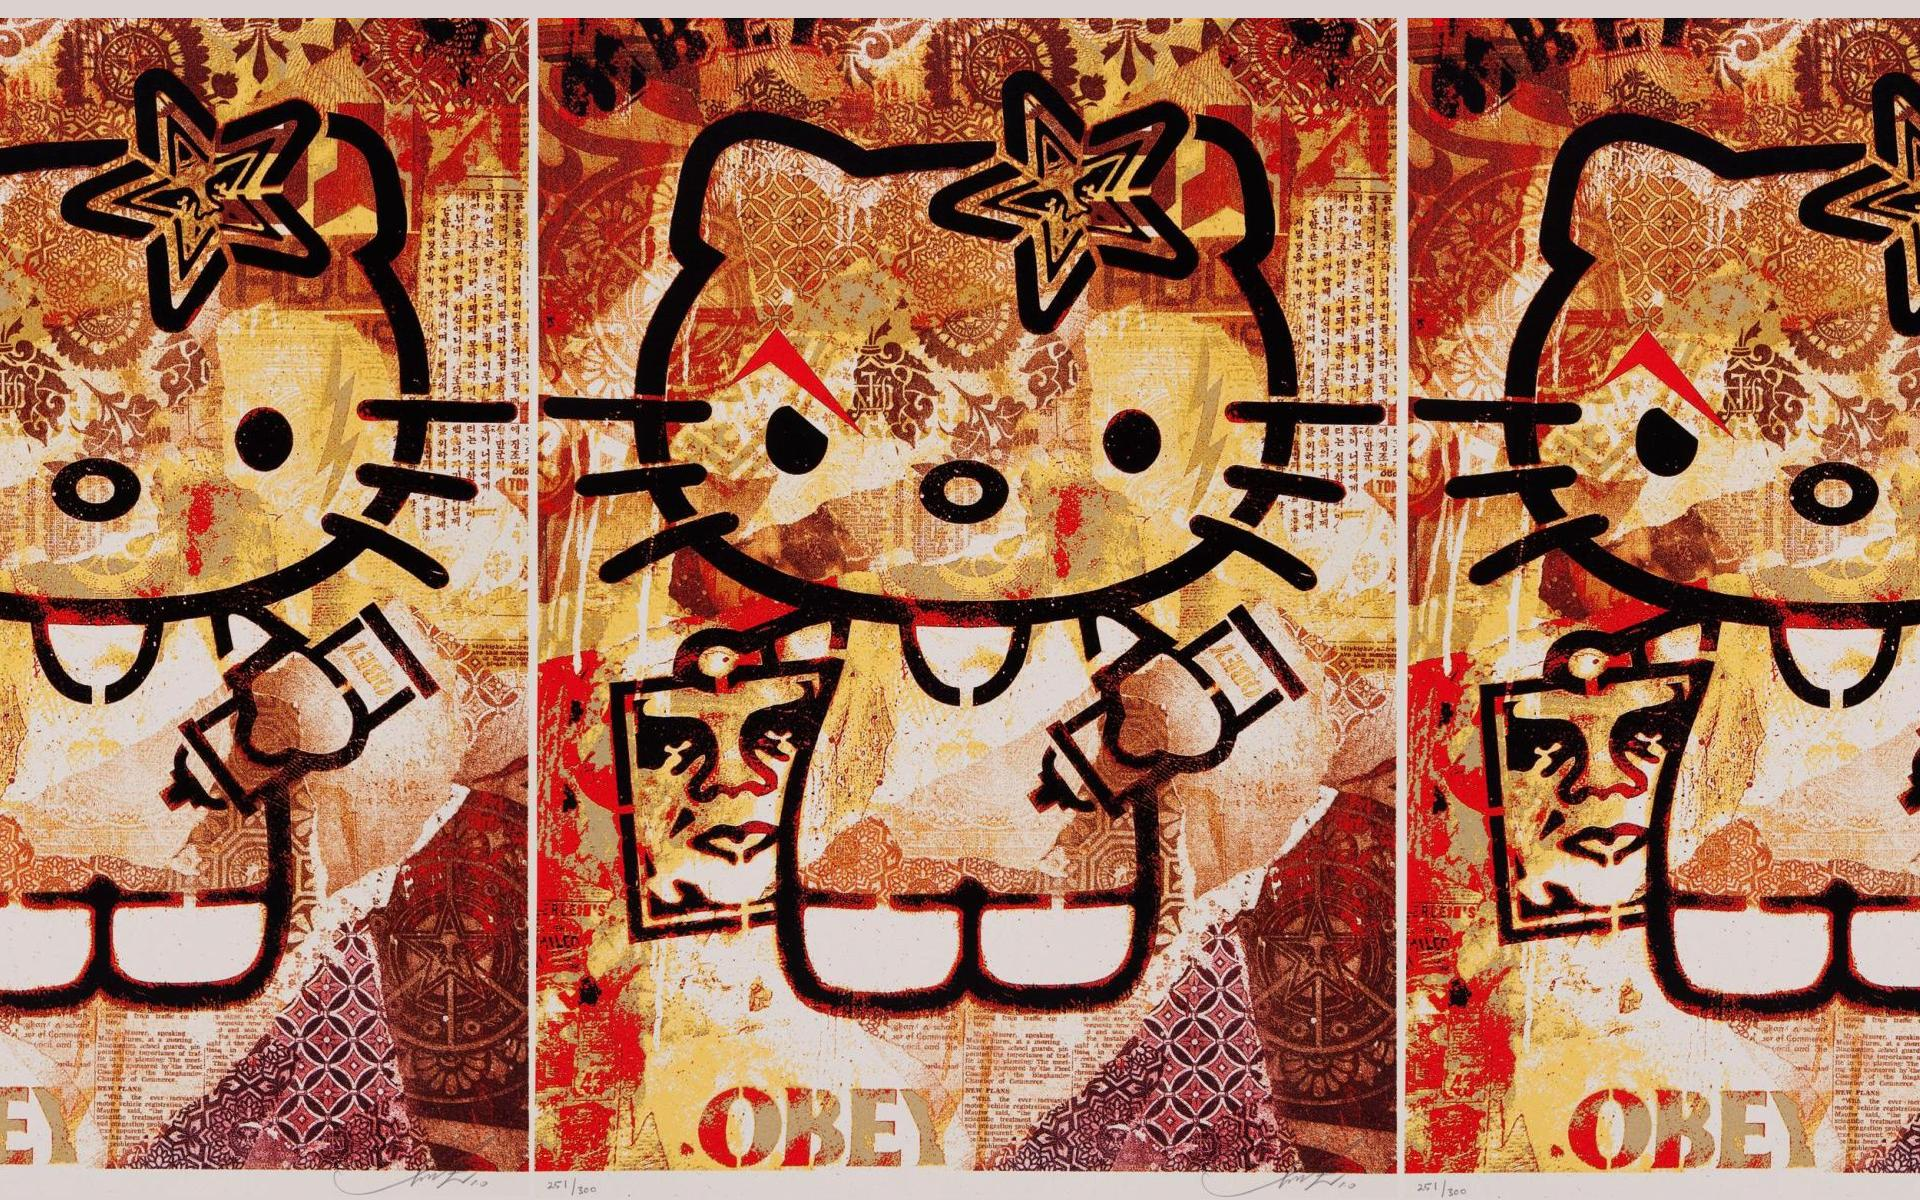 Google themes hello kitty - Obey Hello Kitty Wallpapers Obey Hello Kitty Myspace Backgrounds